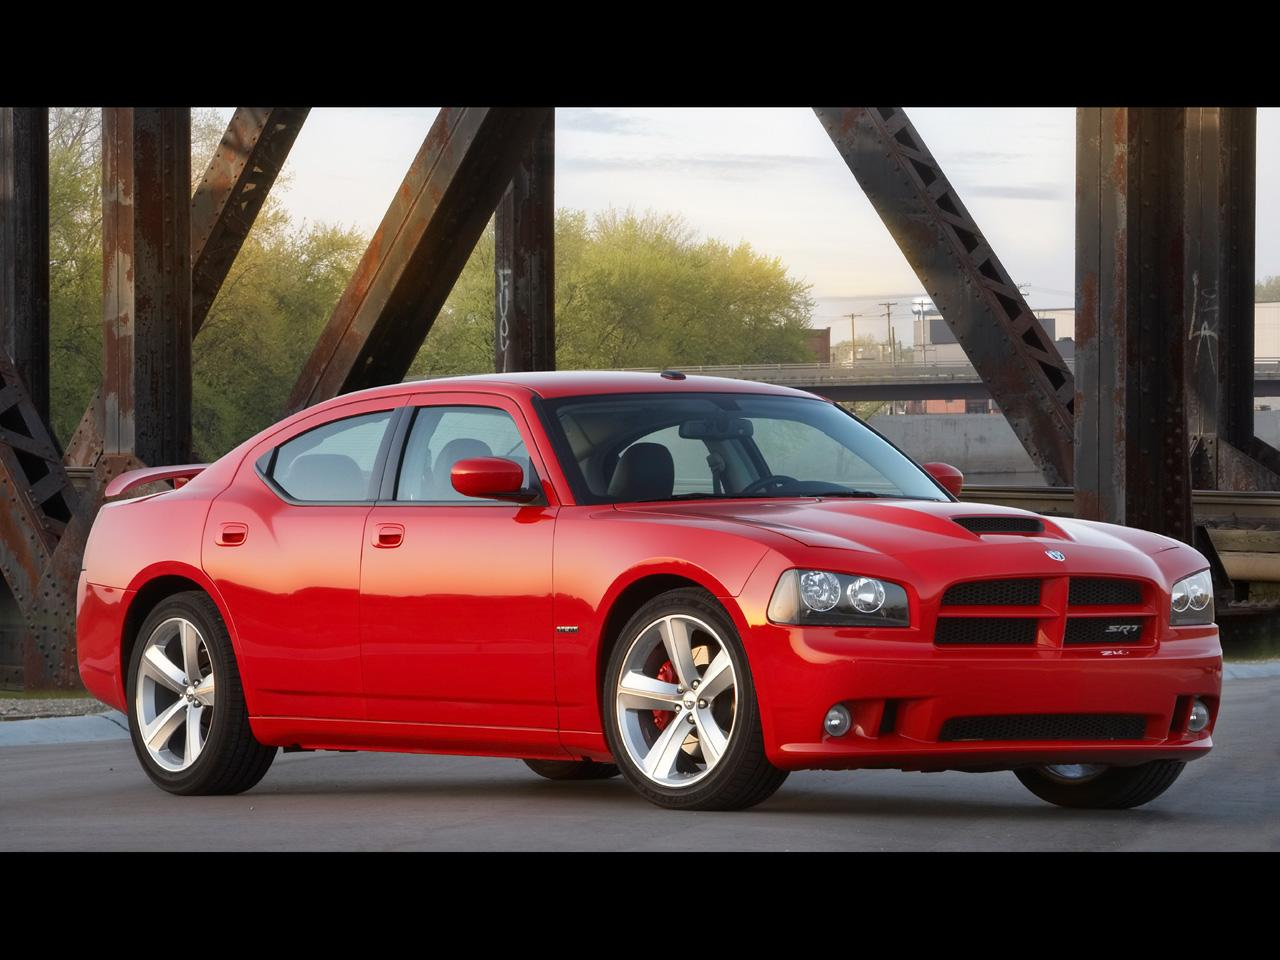 Dodge Charger Srt8 Wallpaper 4654 Hd Wallpapers in Cars   Imagescicom 1280x960